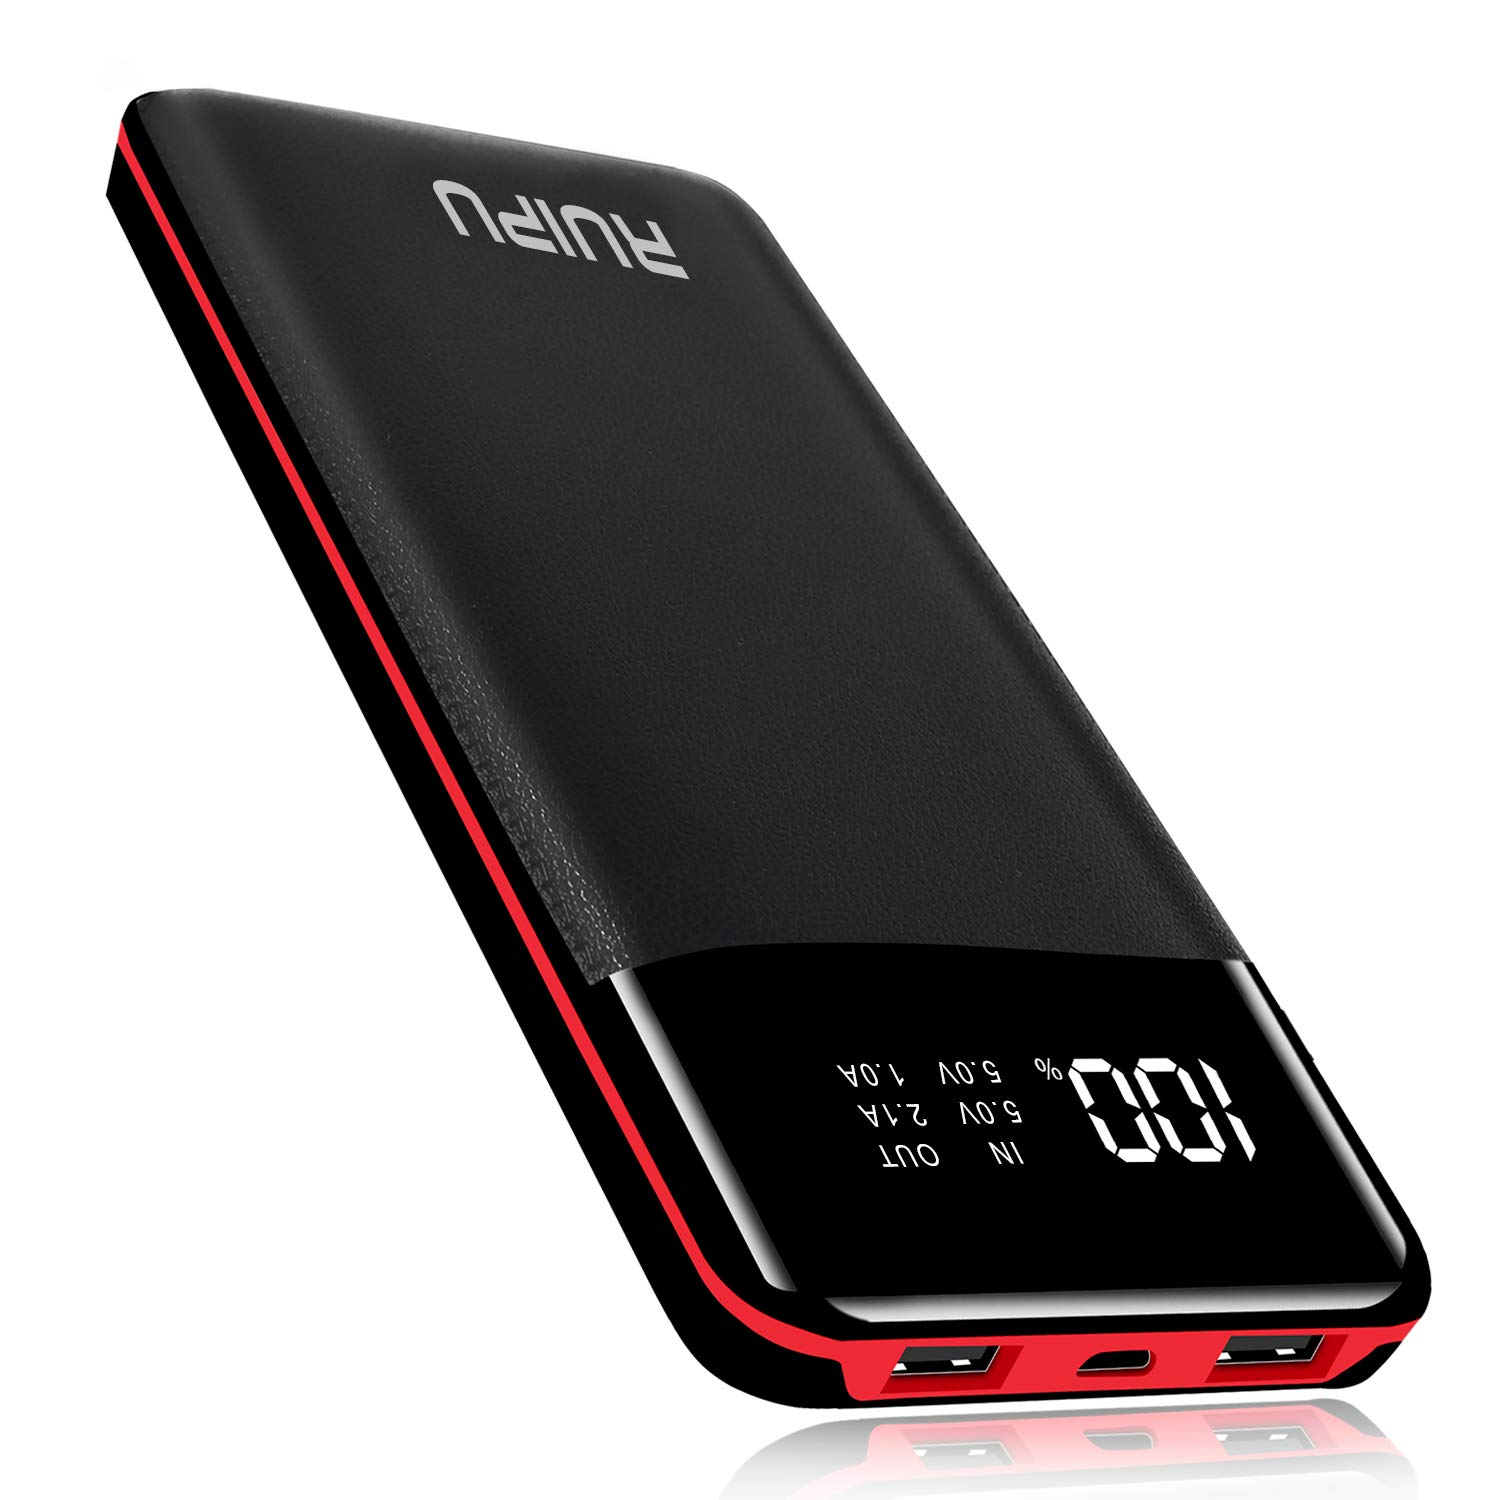 Power Bank 24000mAh Portable Charger Huge Capacity Dual USB External Battery Packs Portable Phone Charger Battery Backup Compatible More the Android Smart phone,Tablets and Others by Ruipu Direct